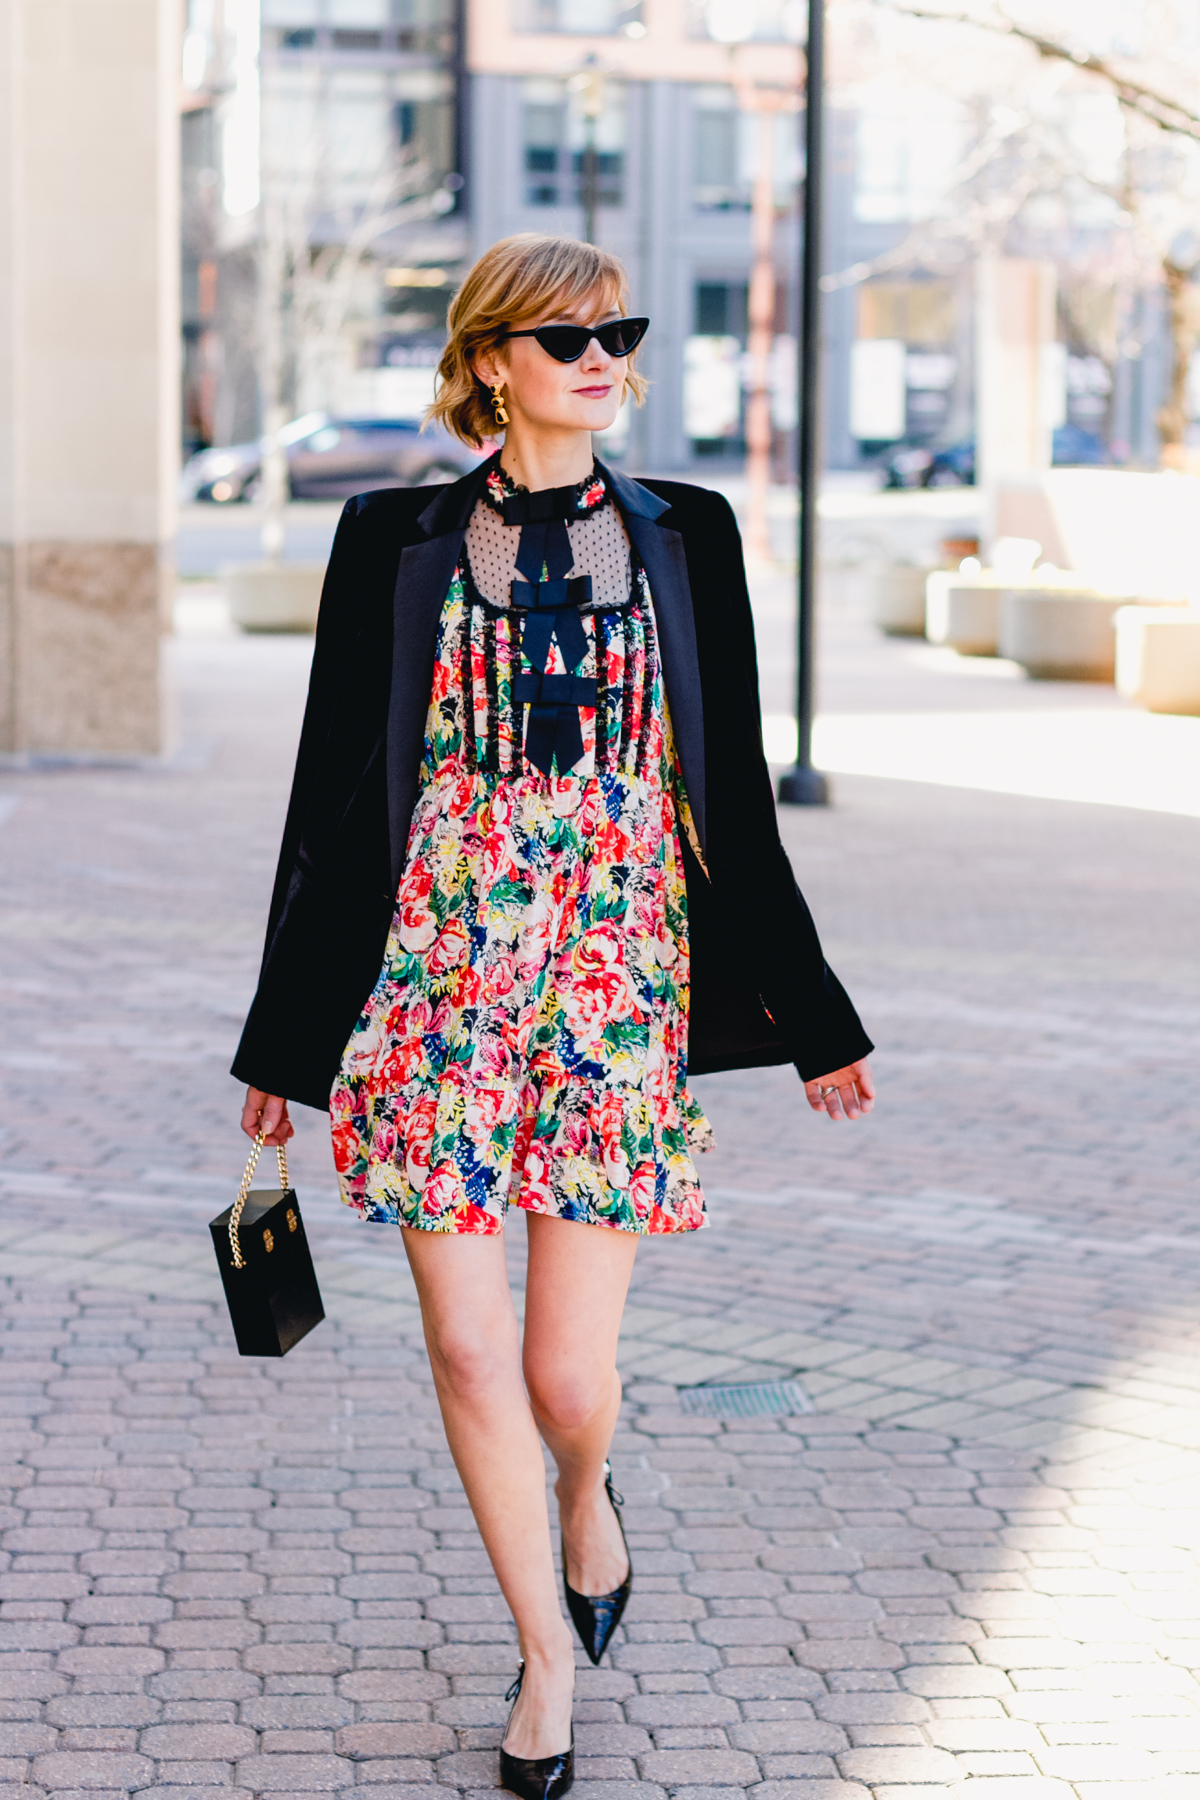 Ganni dress, Mango velvet blazer, and vintage bag